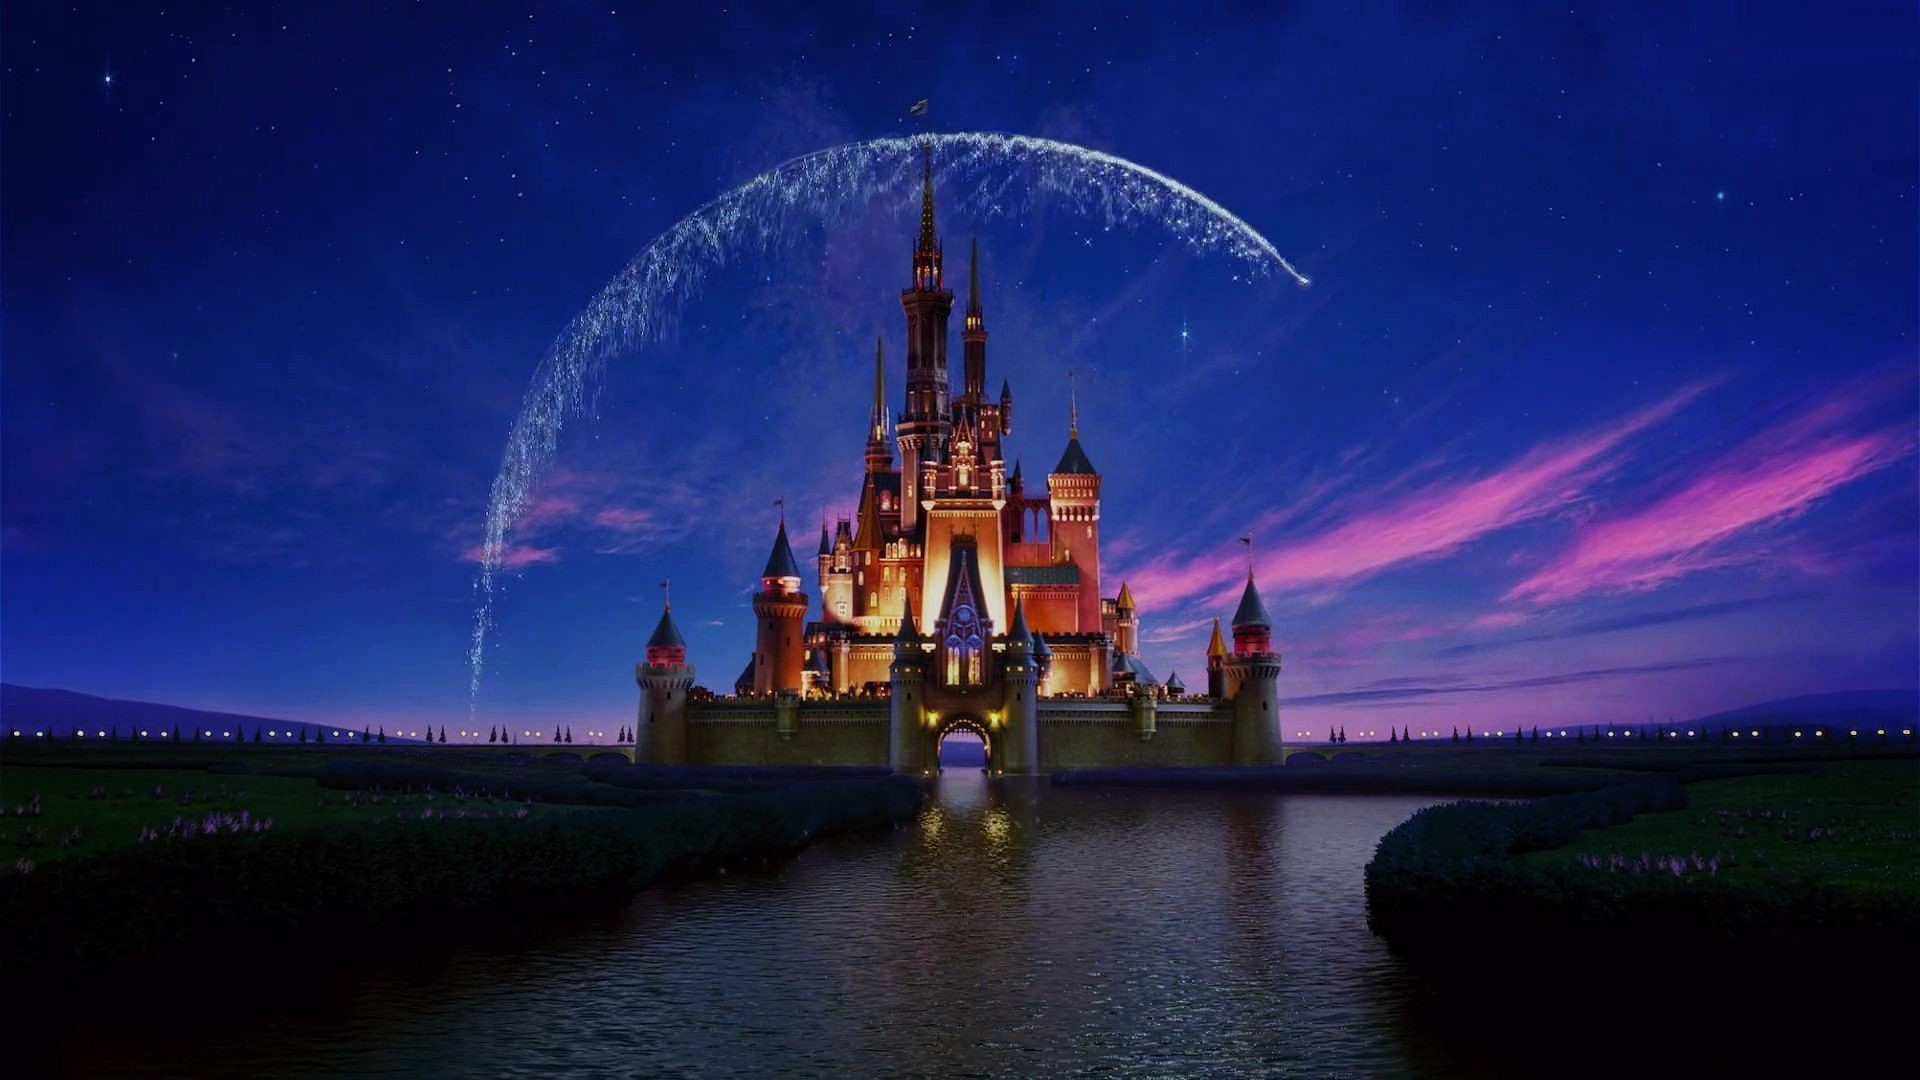 disney castle logo wallpaper Discount Hopper Tickets 1920x1080